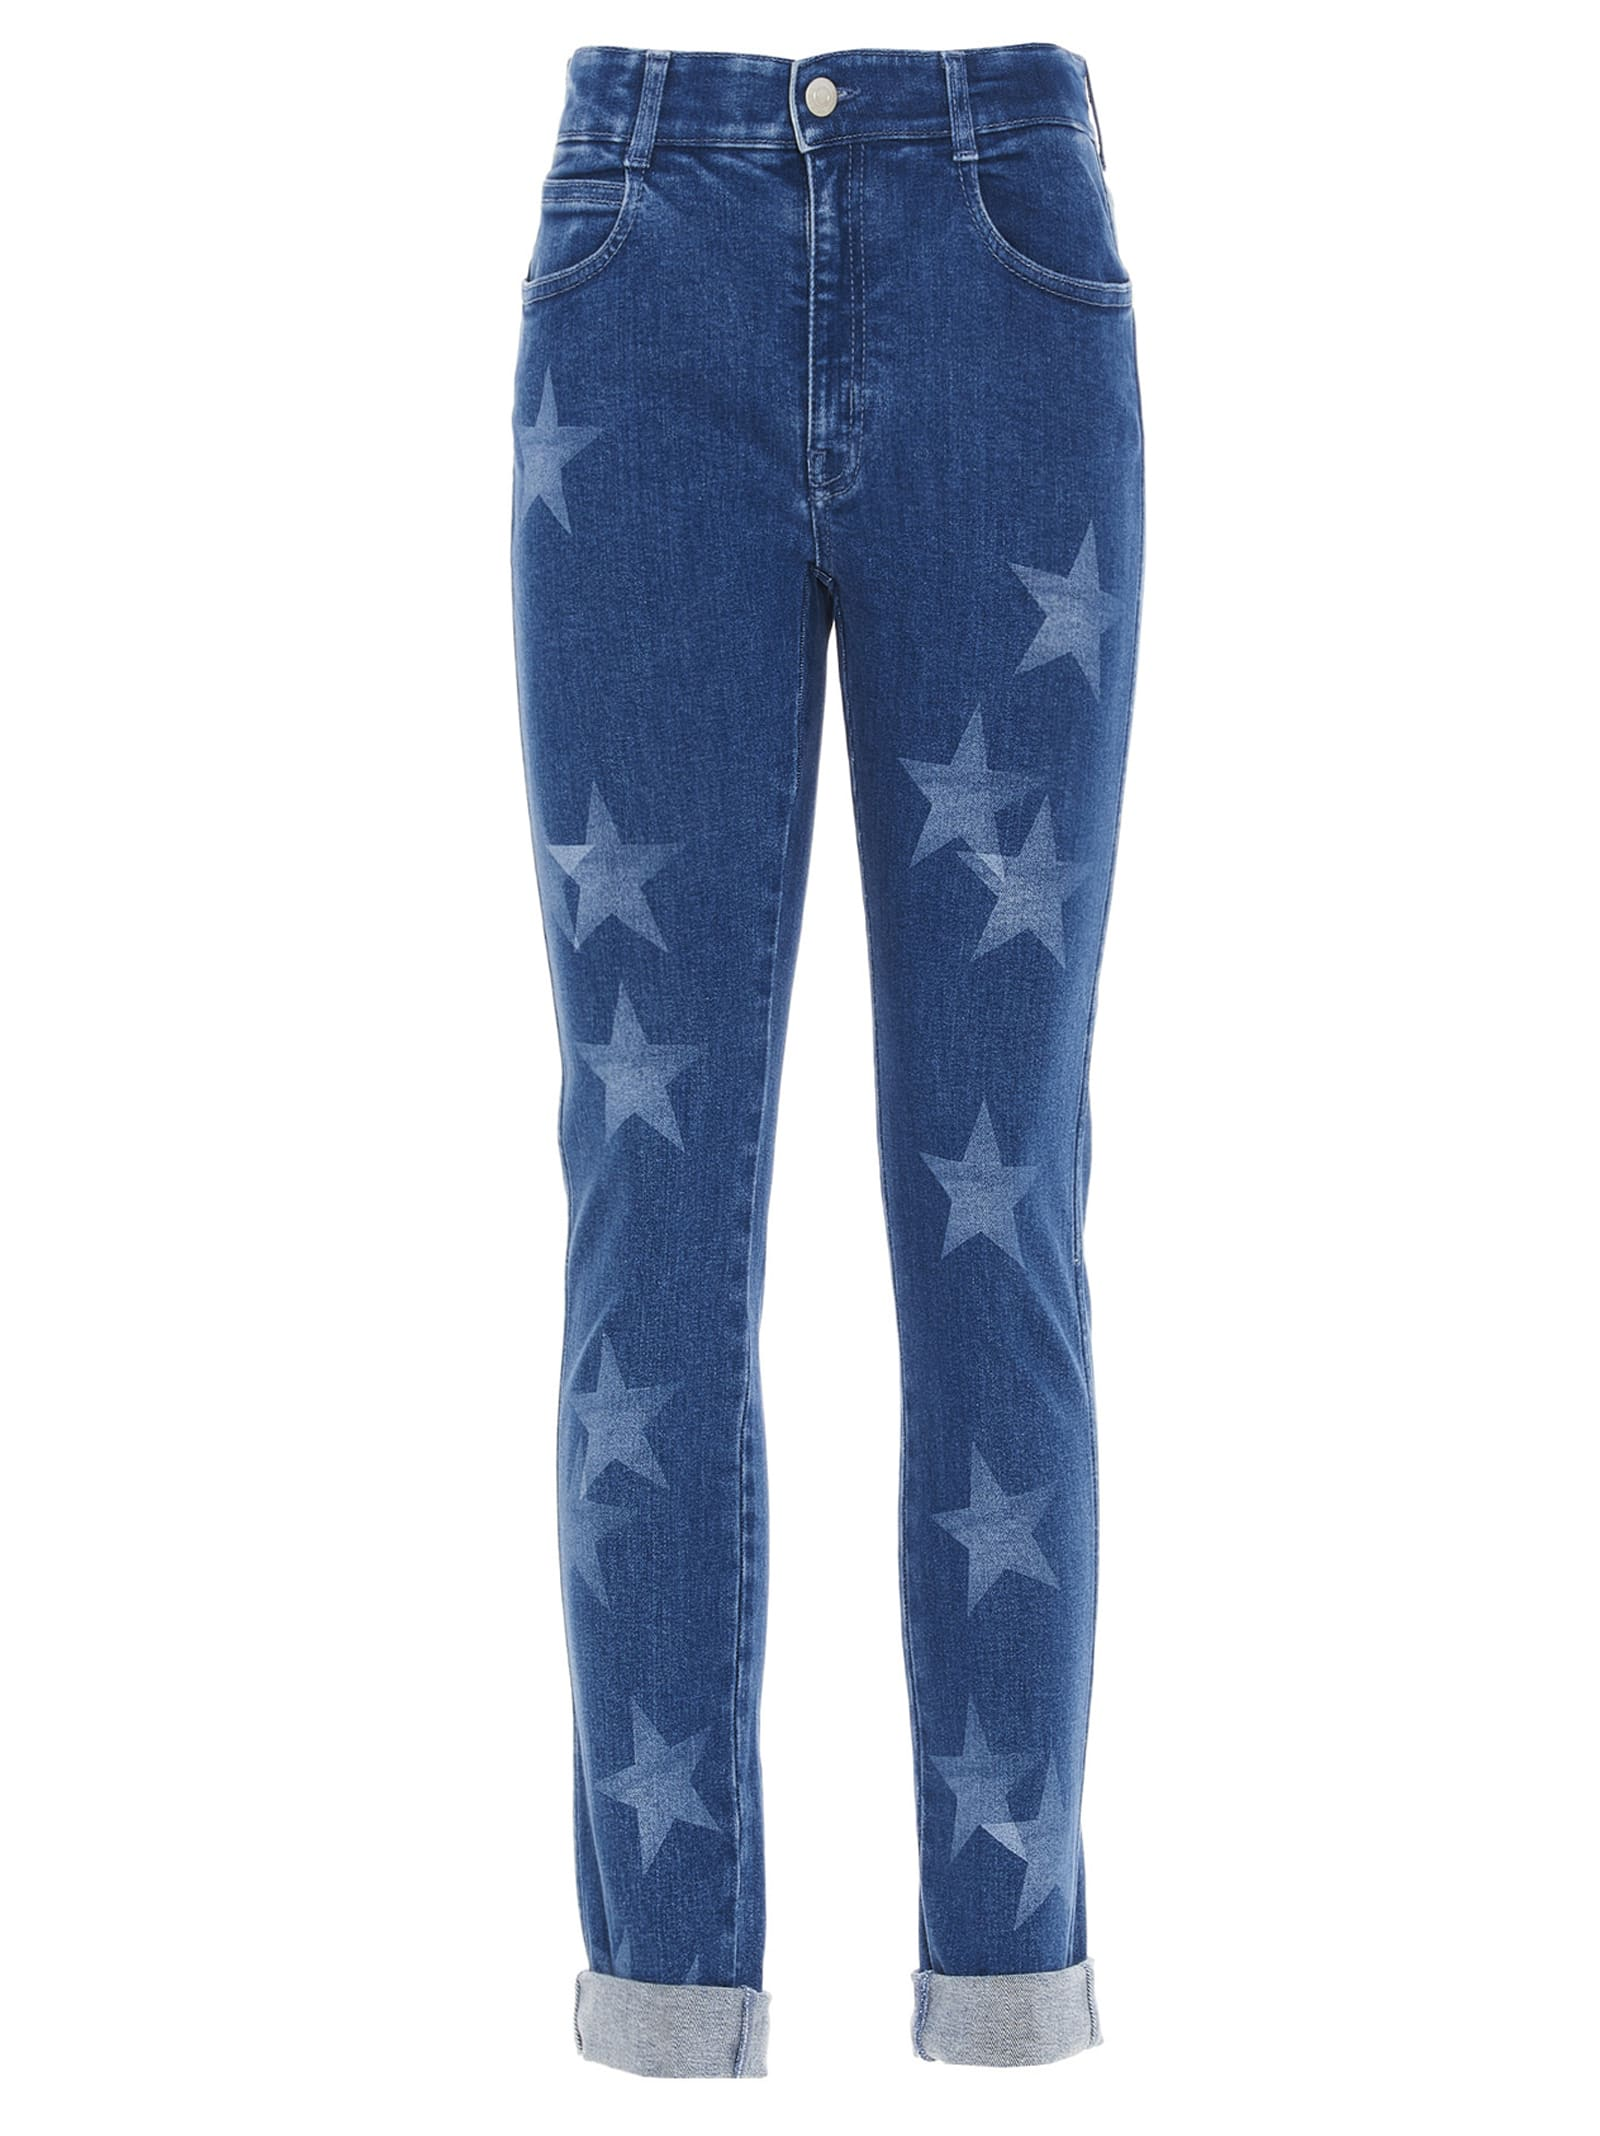 Stella Mccartney NEW STARS JEANS